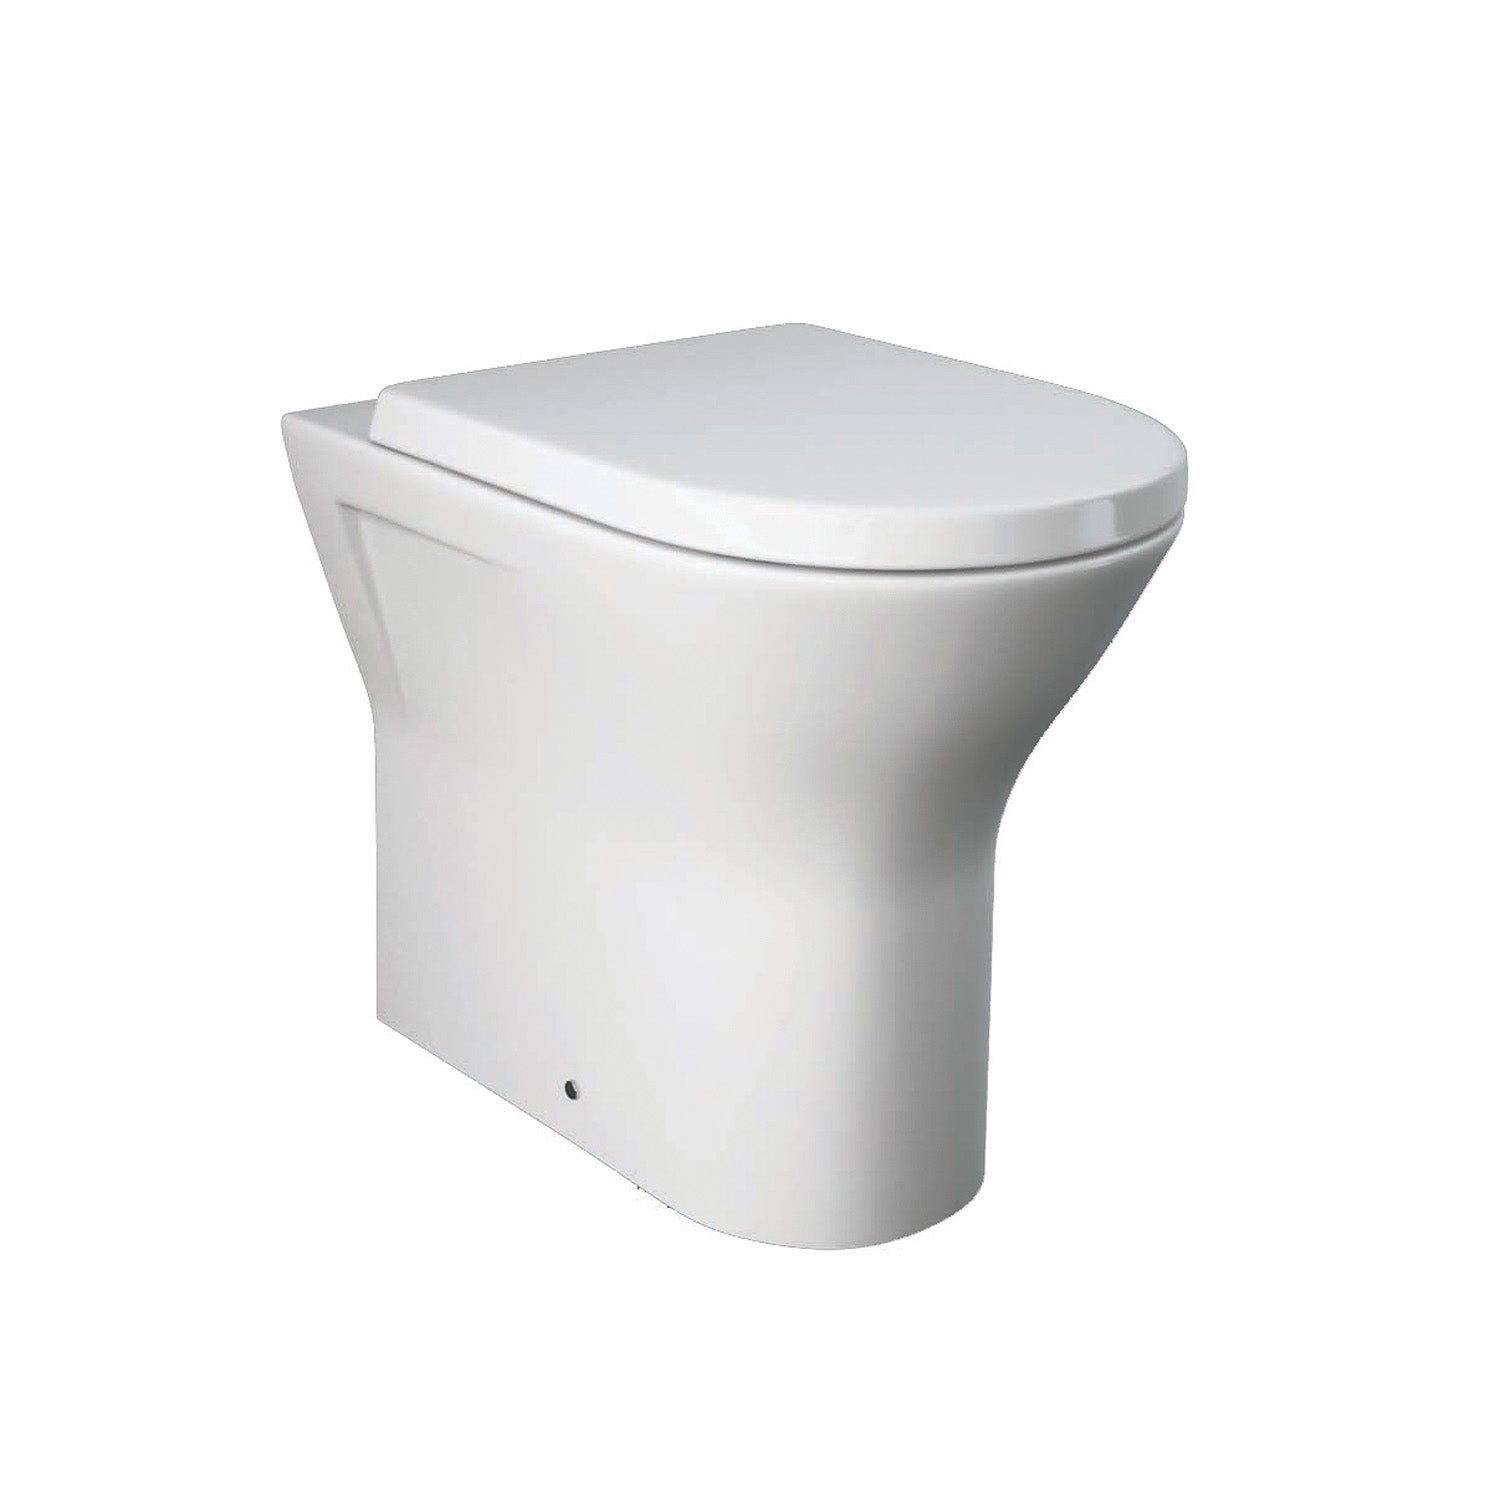 450mm Vesta Comfort Height Back to Wall Toilet without a seat and cover on a white background